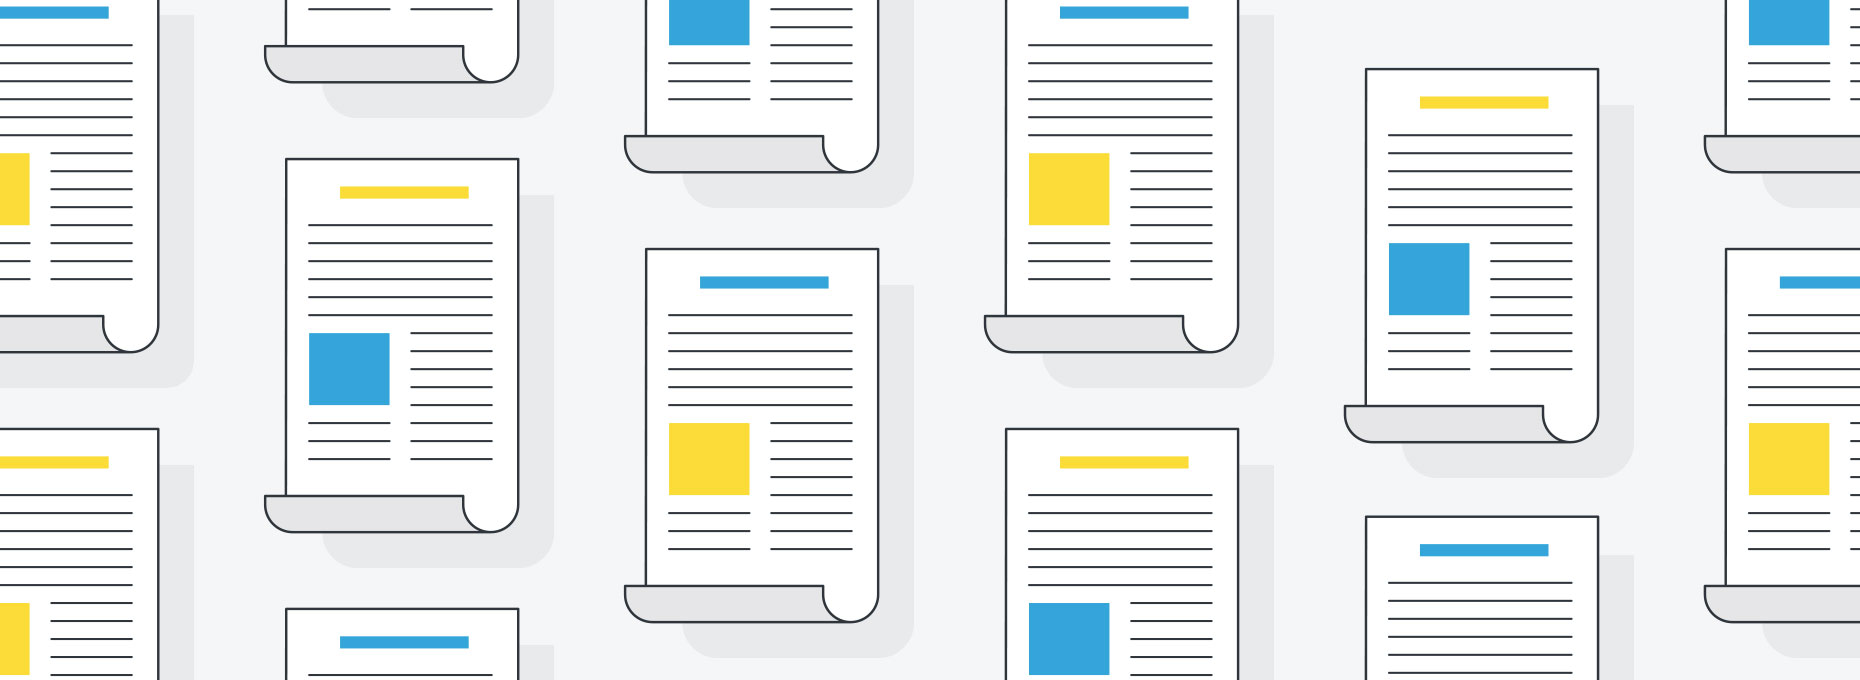 Article graphic image with repeating icons